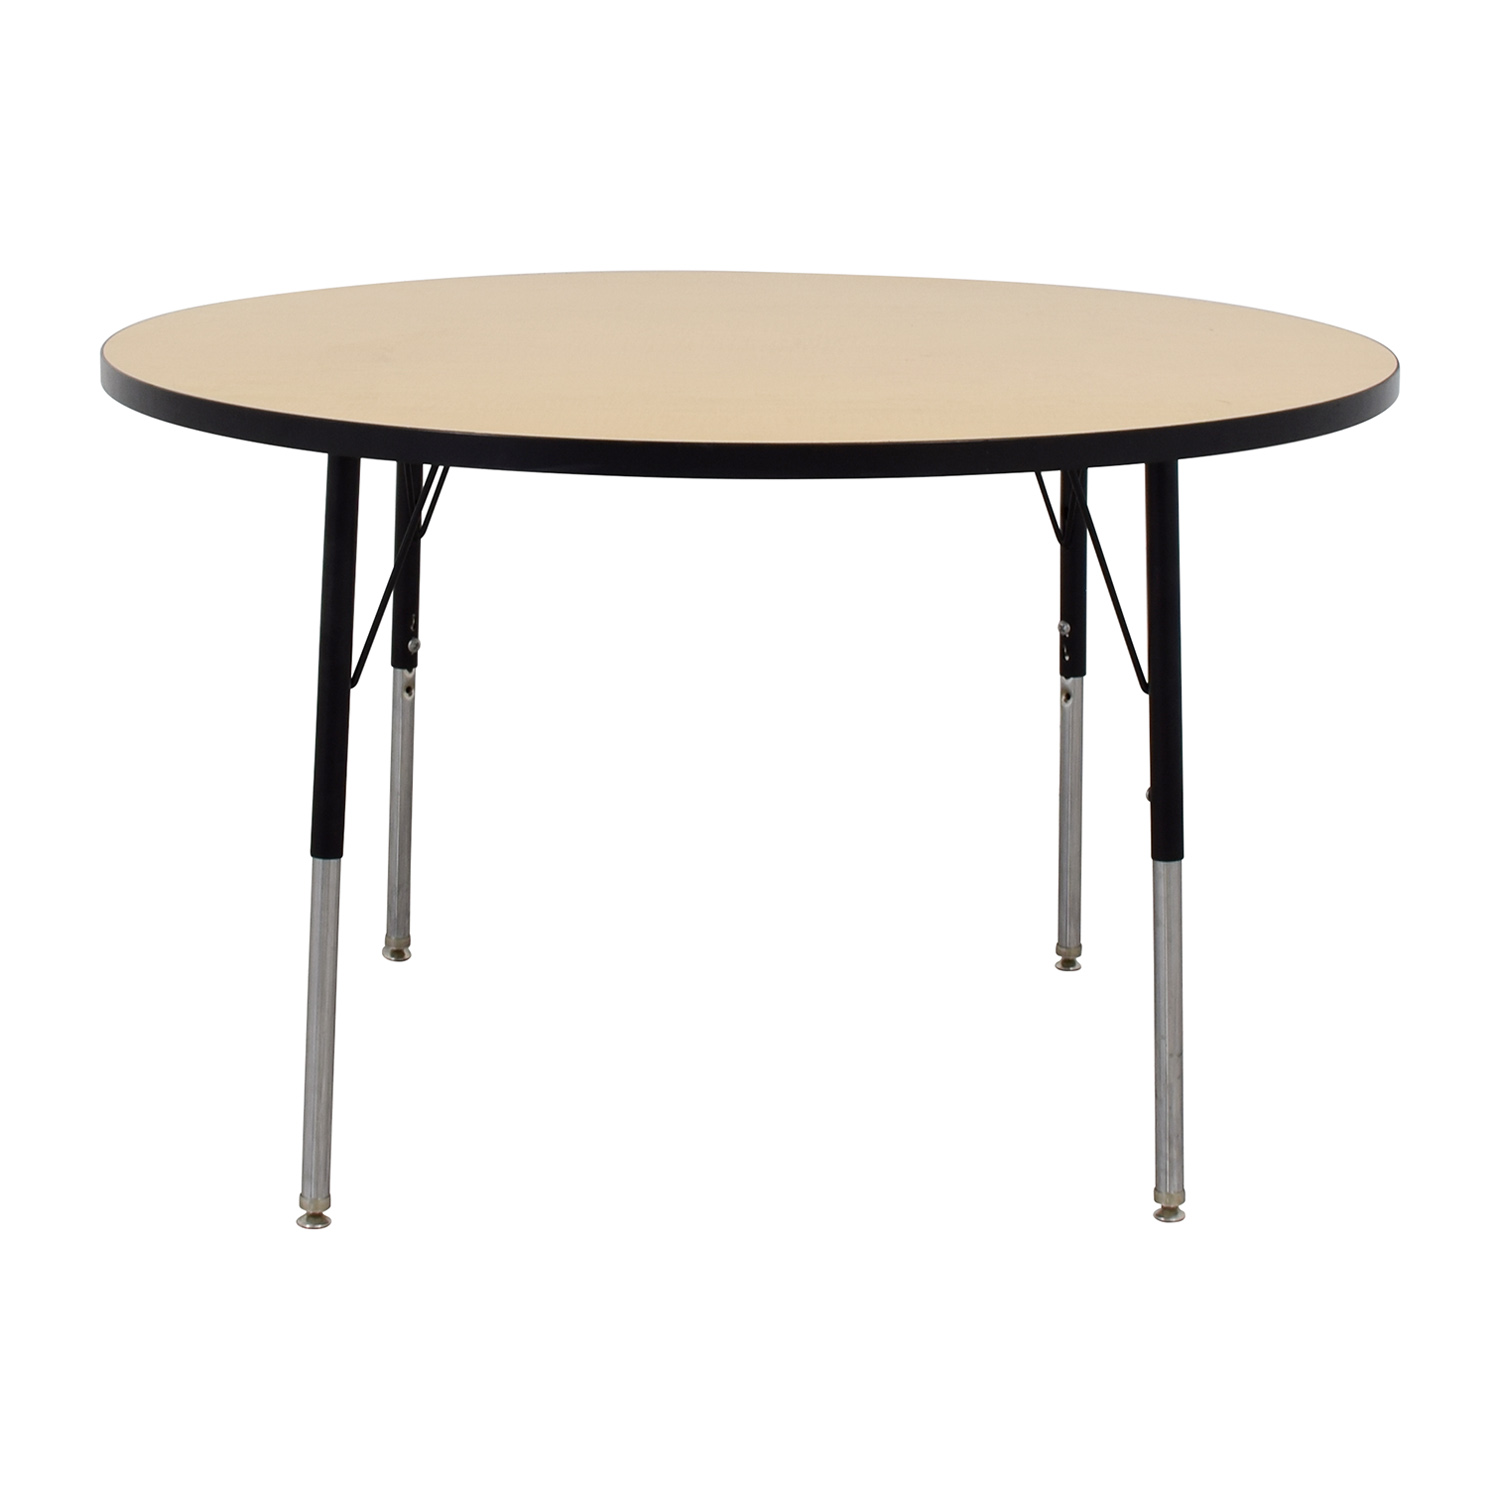 Round Activity Table / Utility Tables